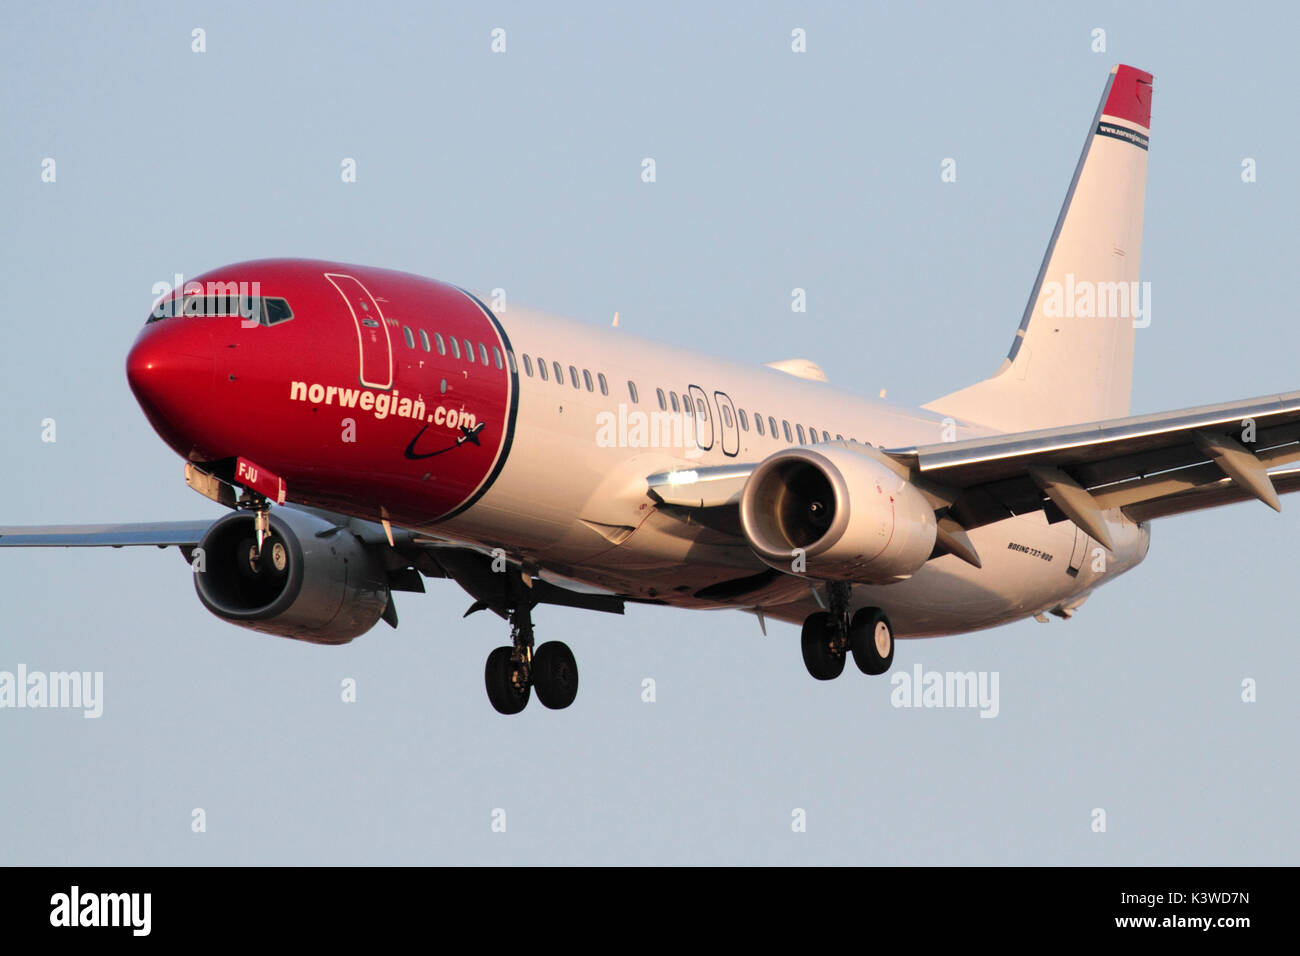 Norwegian Airlines Boeing 737-800 airliner on approach at sunset - Stock Image